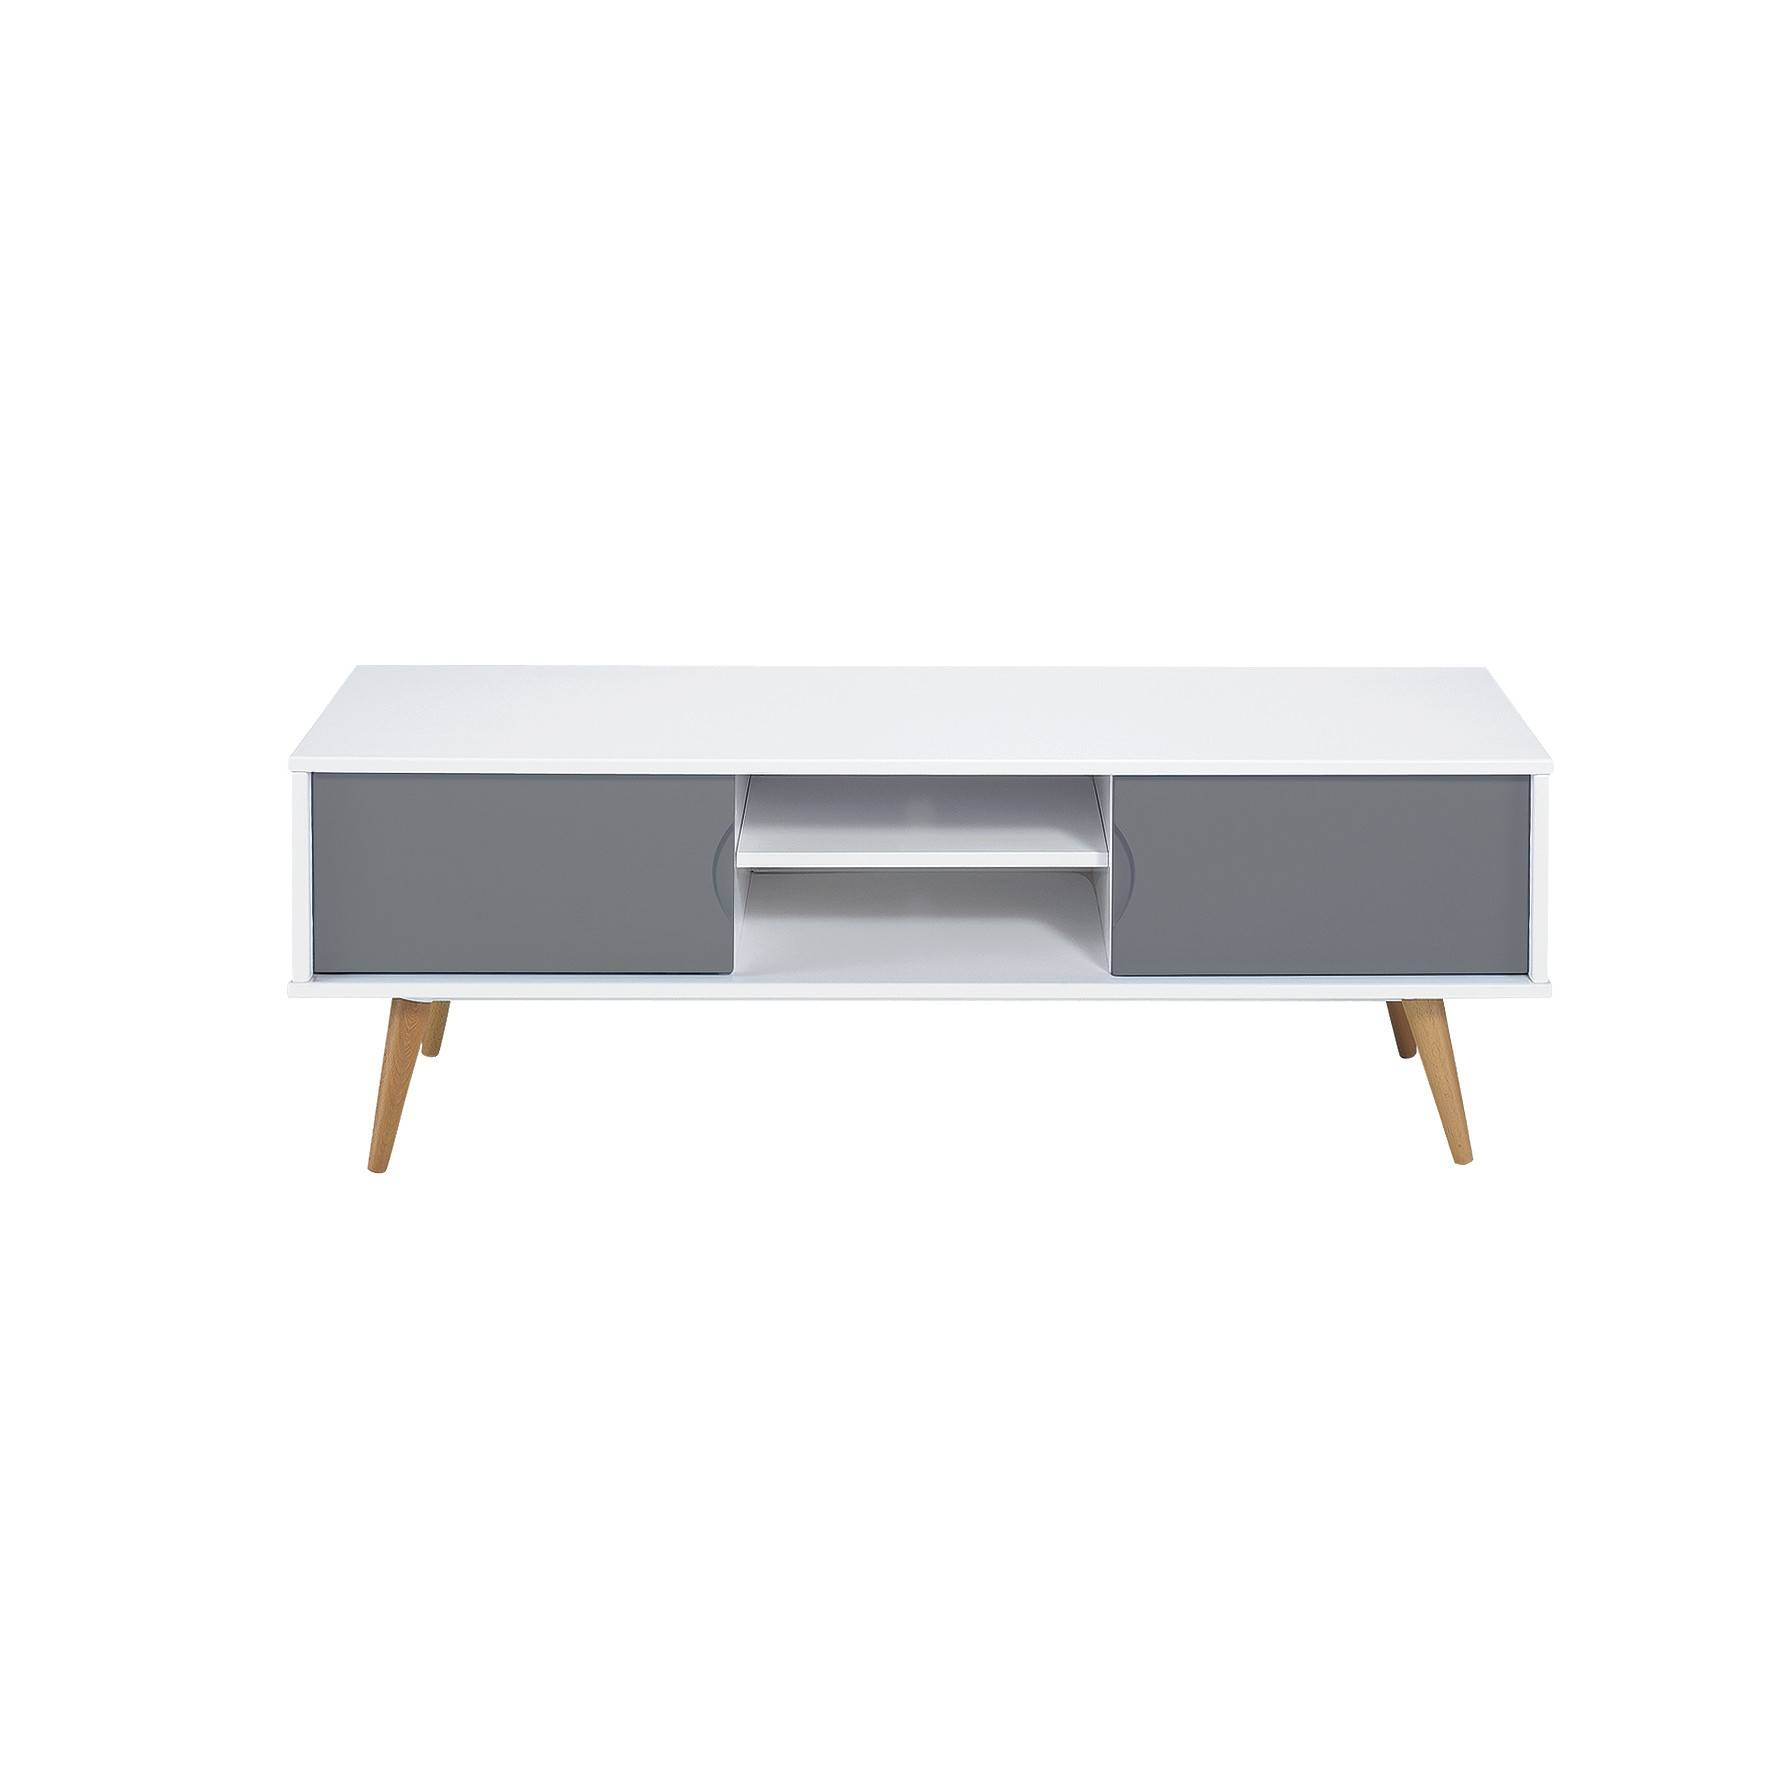 2 Drawer Low Vasby Tv Unit | Temple & Webster Pertaining To Low Tv Units (View 3 of 15)